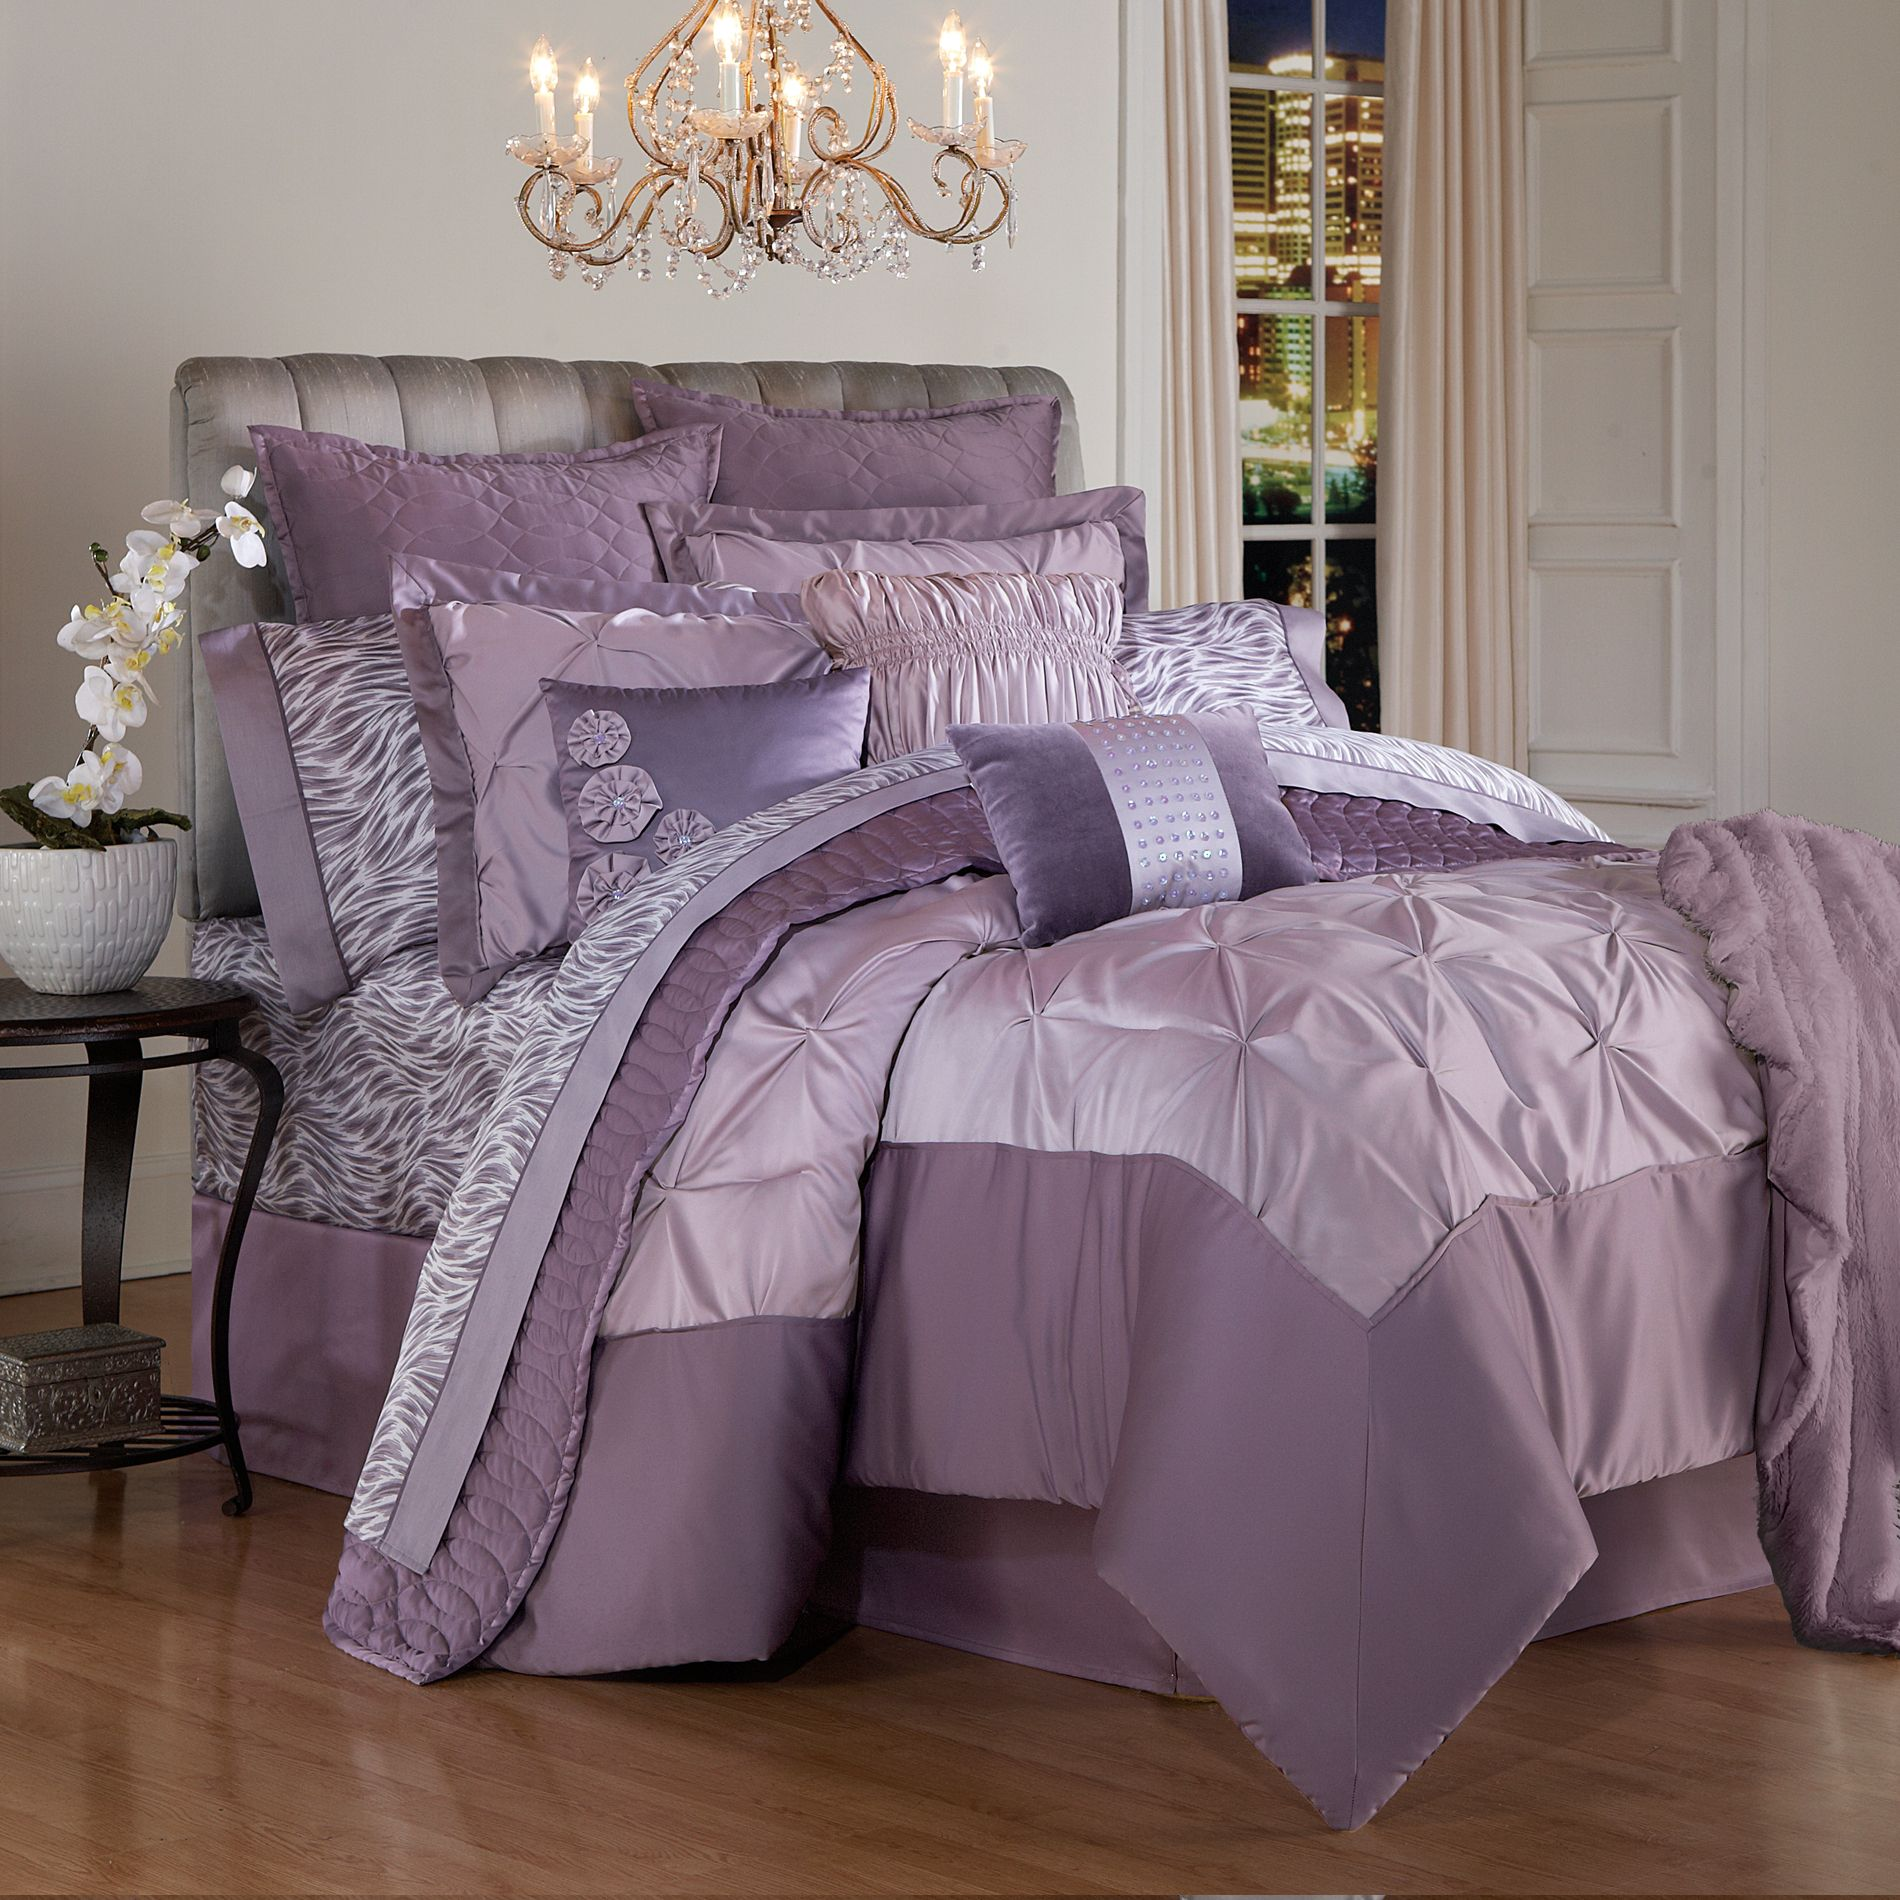 Kardashian Kollection Home-Spanish Harlem Bedding Collection